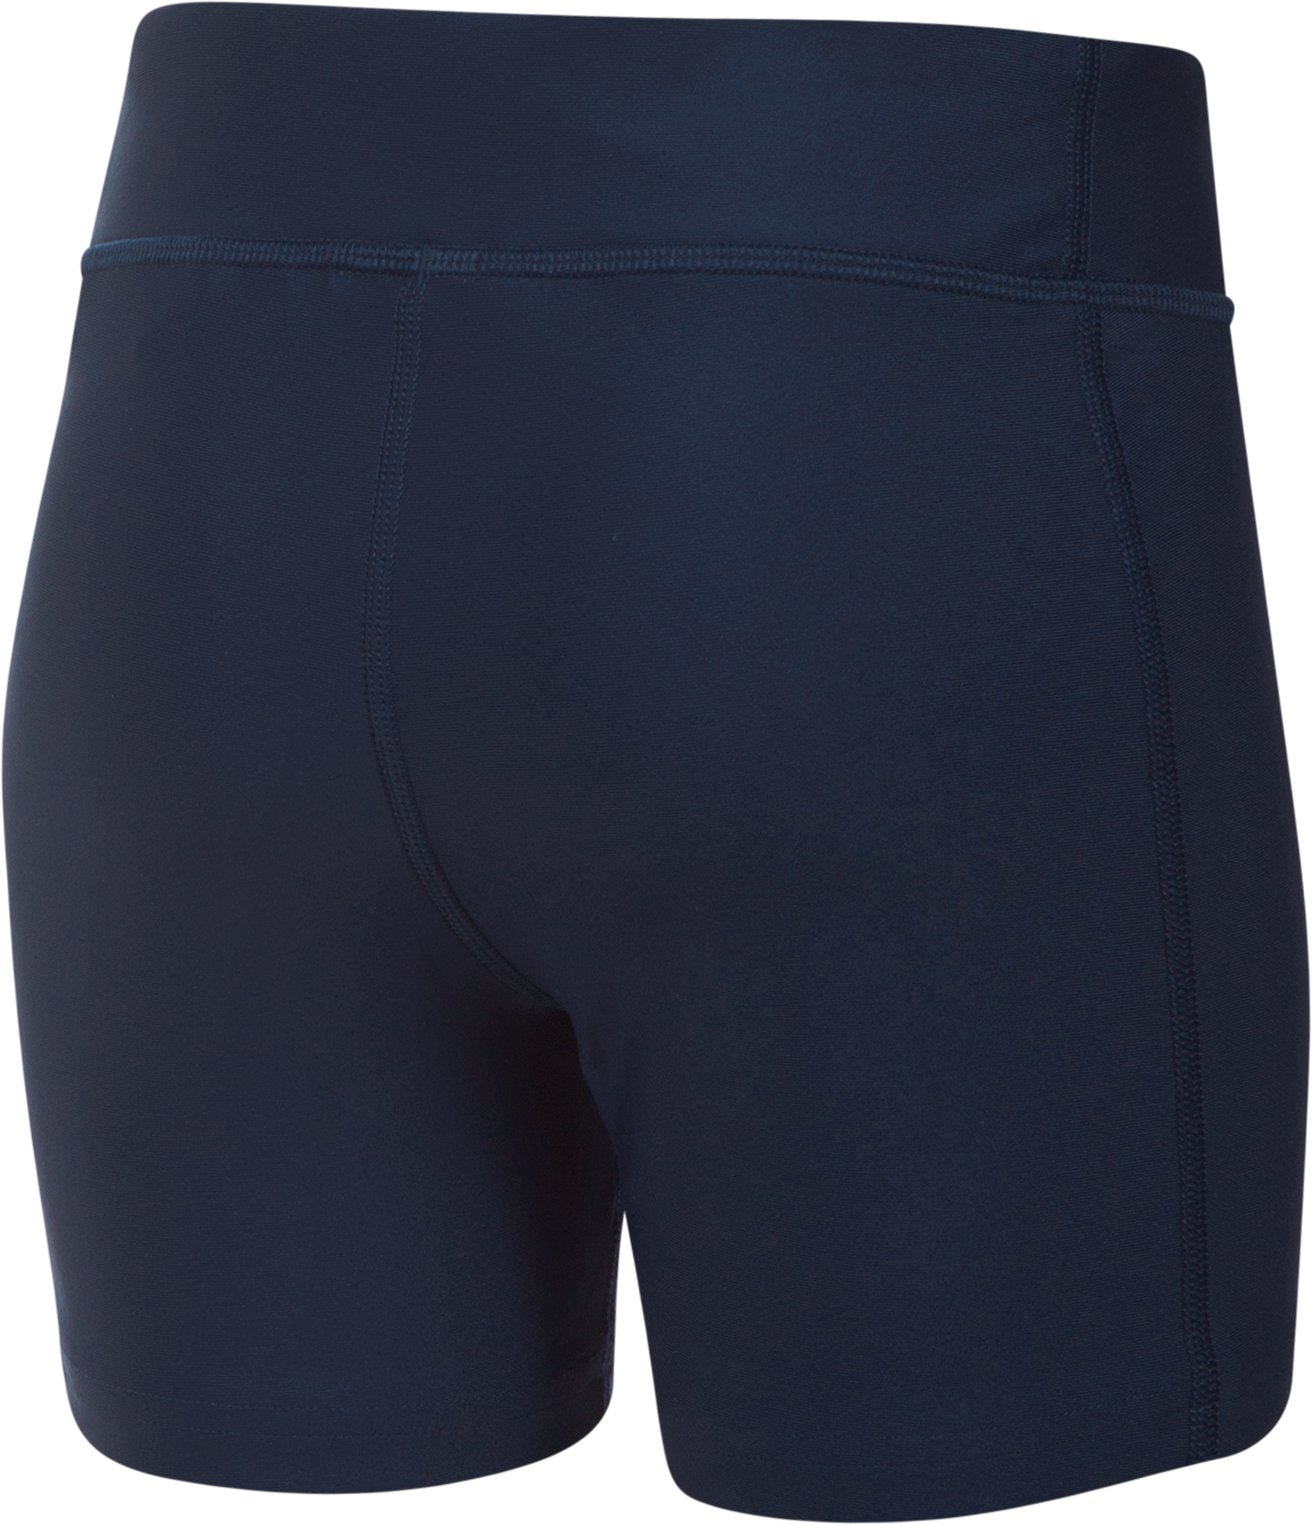 "Girls' UA On The Court 4"" Shorts, Midnight Navy"